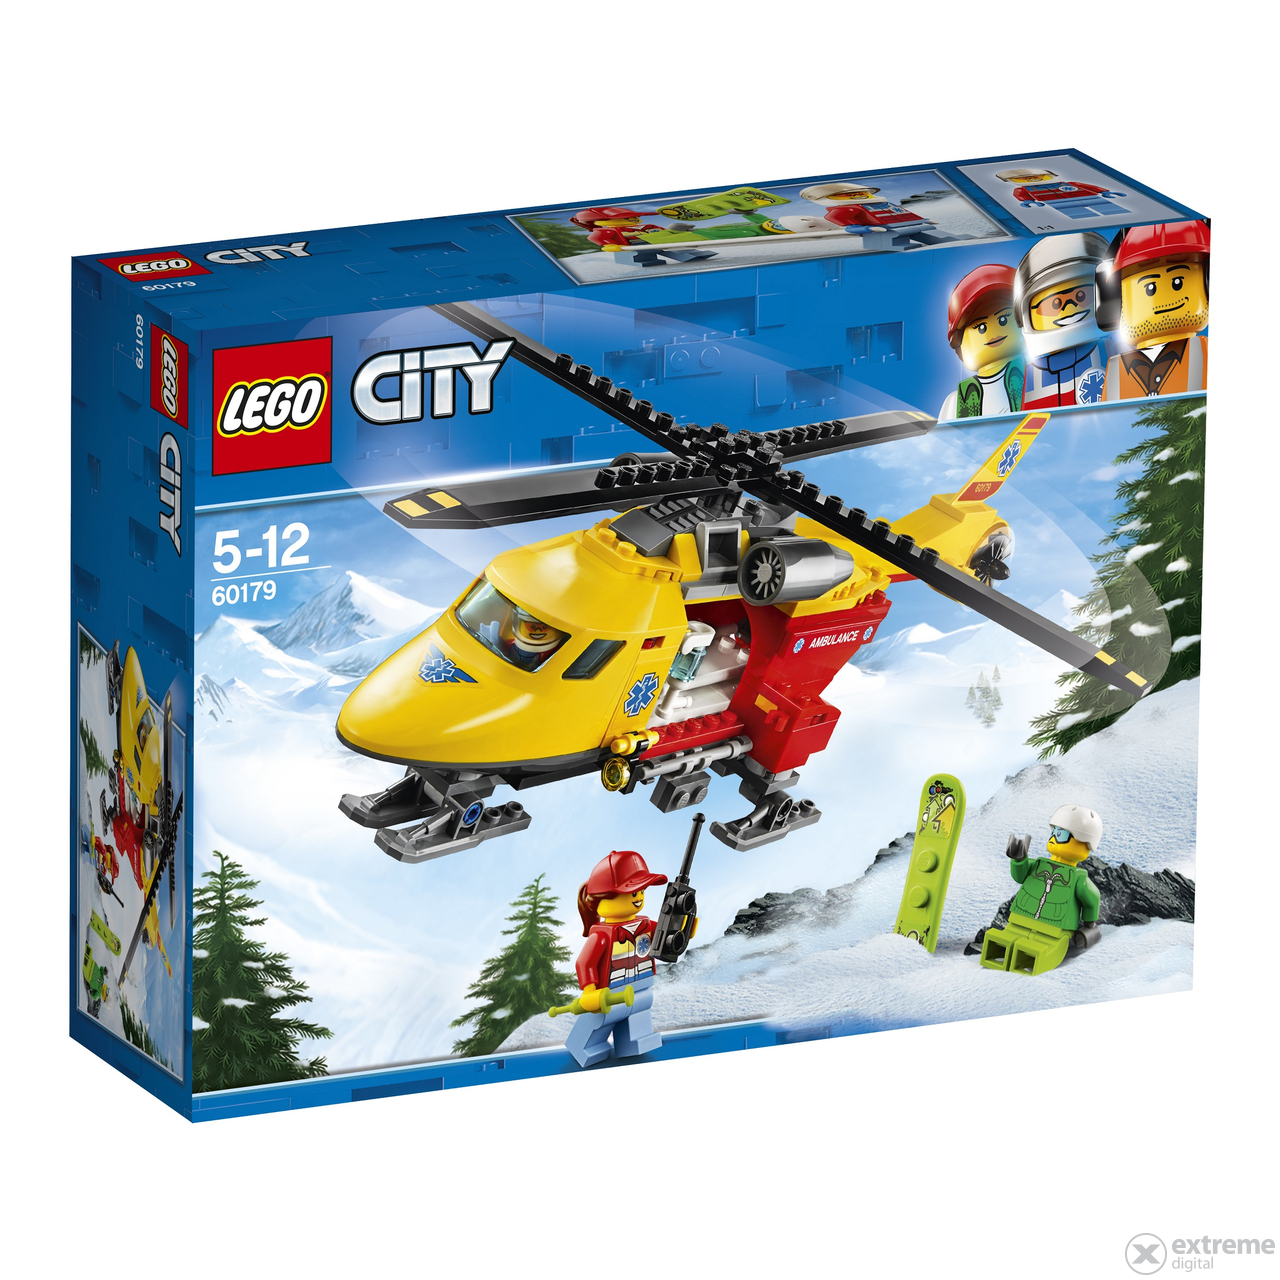 police lego helicopter with Lego City Mentohelikopter 60179 P534816 on Ambulance Clipart Black And White in addition Lego Duplo World People Set 9222 furthermore Lego Swat Sets furthermore 6598 Metro PD Station also Lego City Mentohelikopter 60179 P534816.